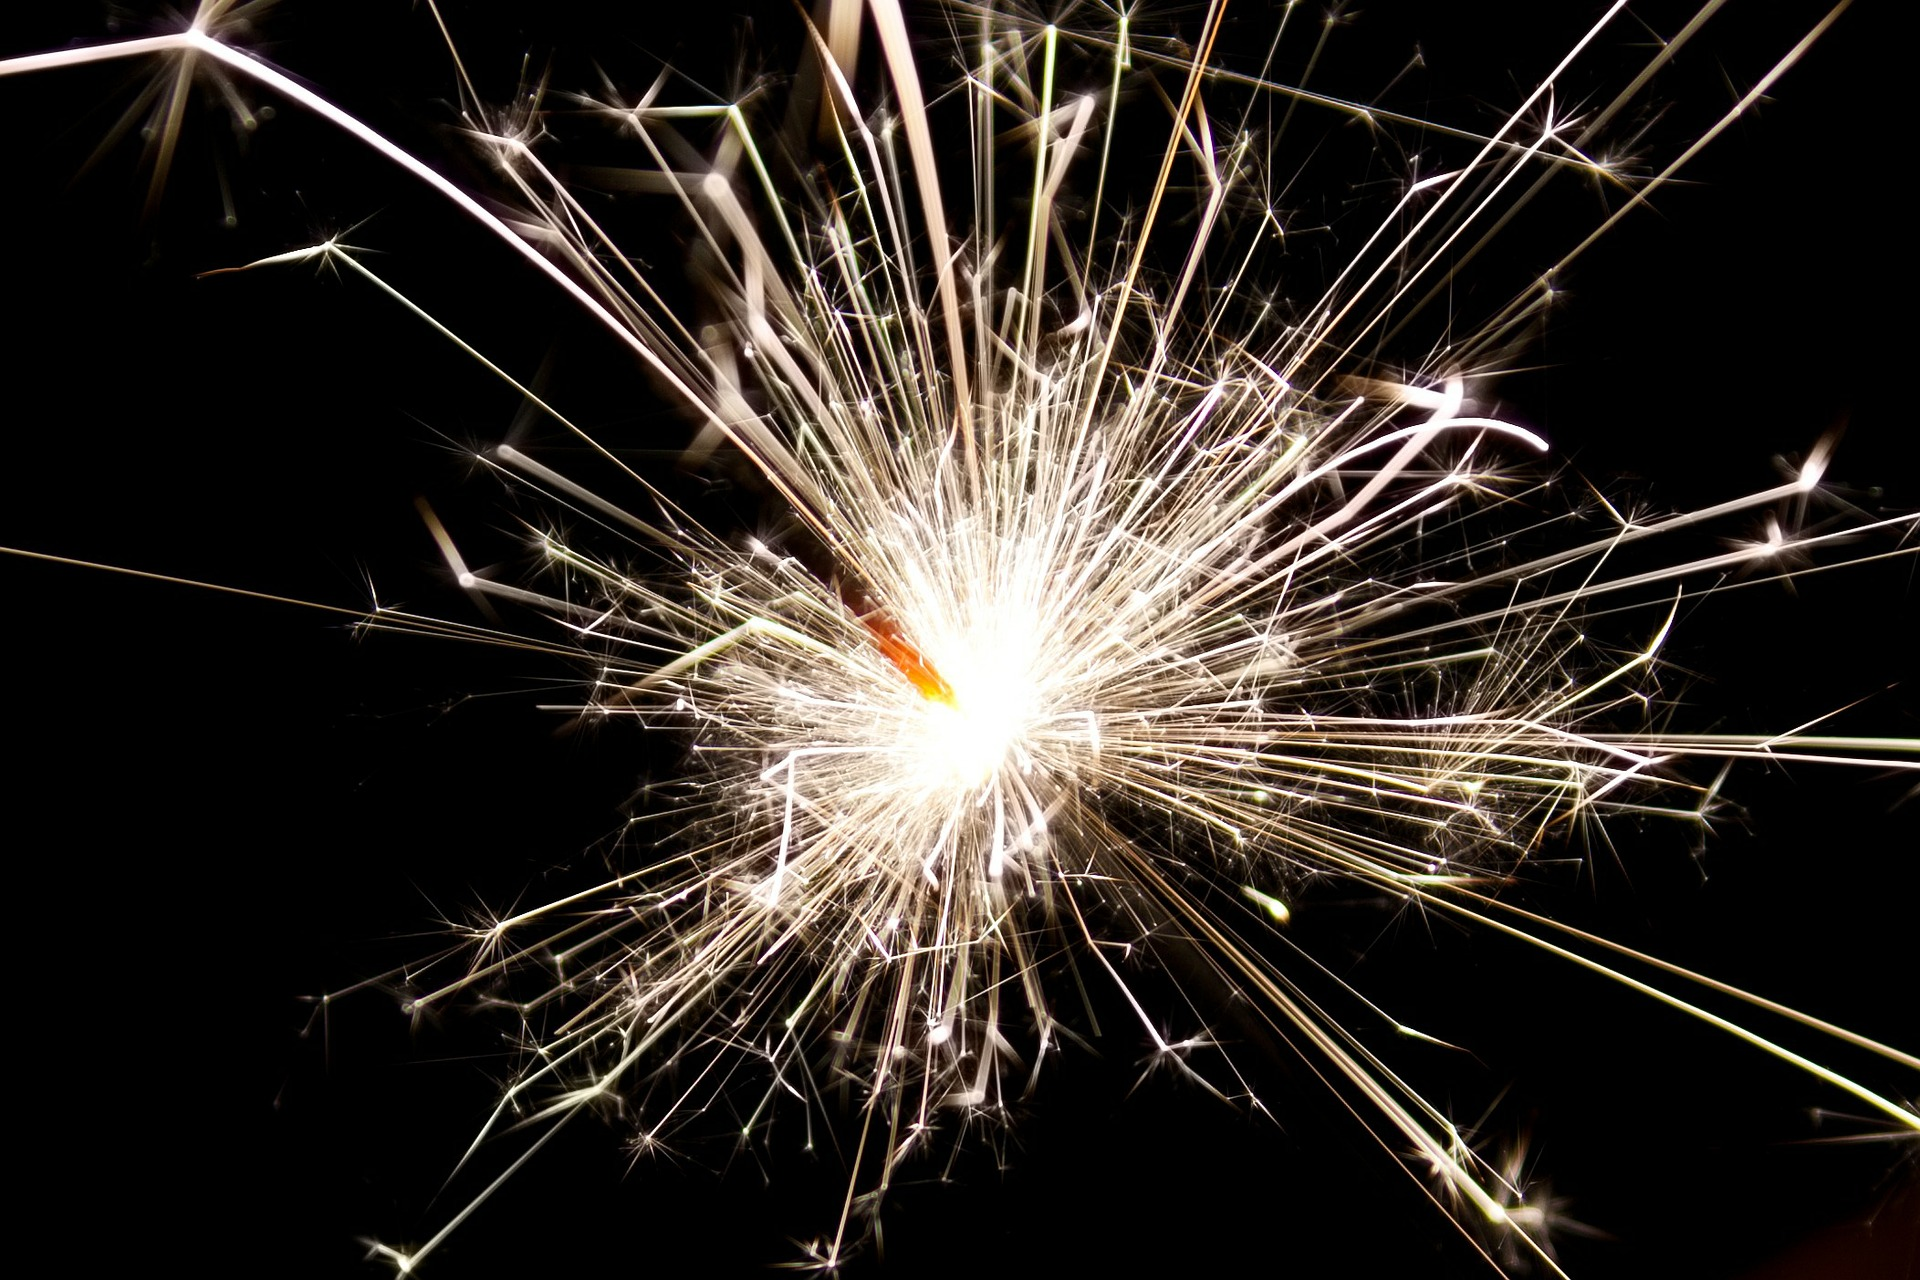 Close-up on a sparkler